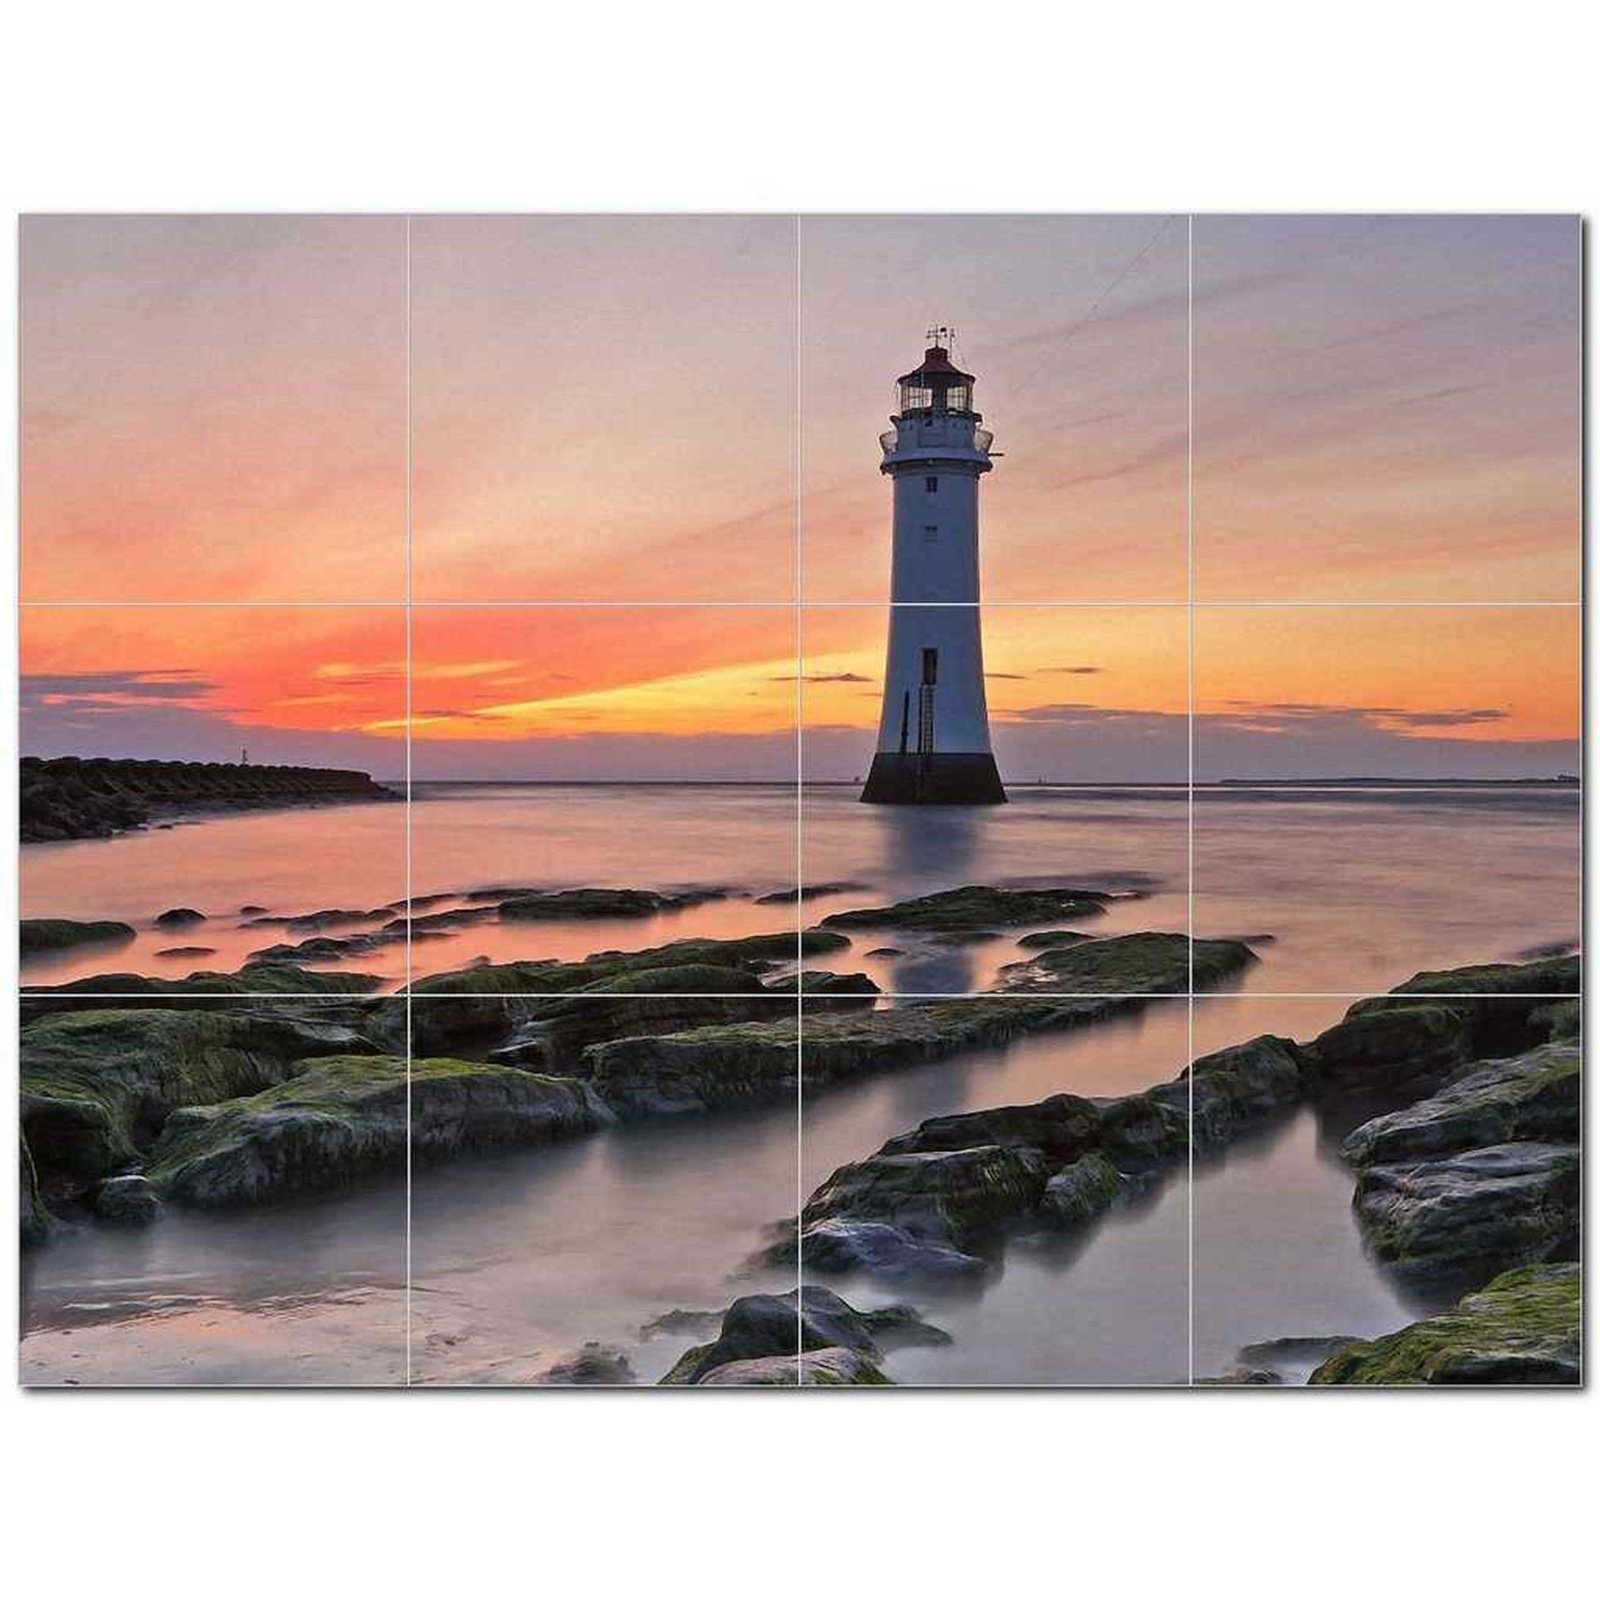 Primary image for Lighthouse Photo Ceramic Tile Mural Kitchen Backsplash Bathroom Shower BAZ405457